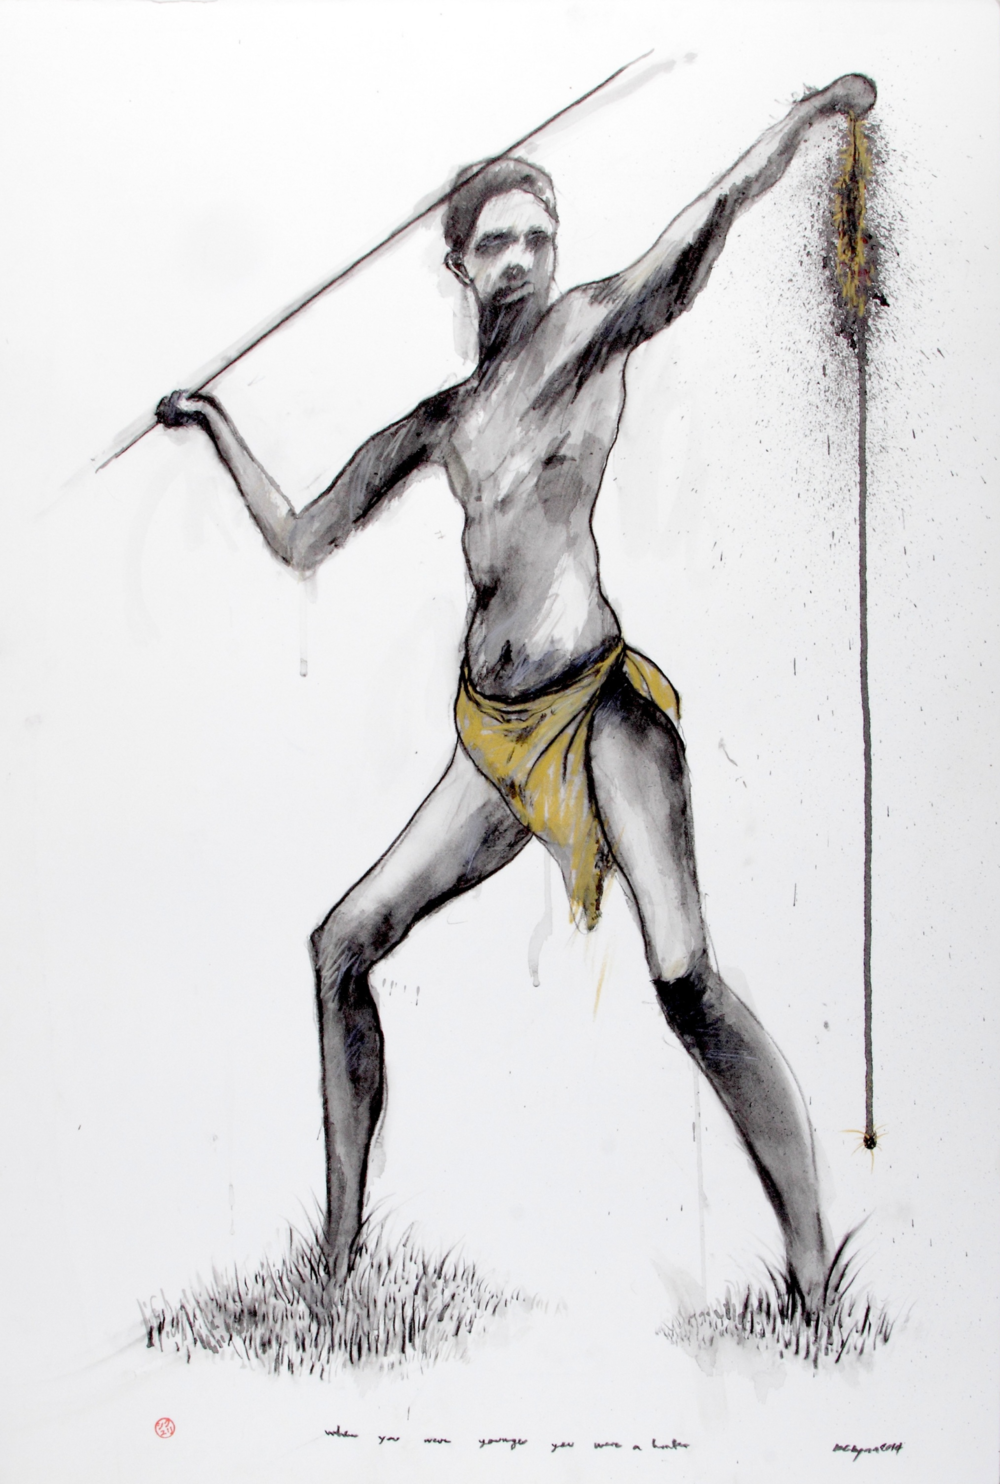 When You Were Younger You Were A Hunter, 2014 Graphite, Acrylic on paper 27 1/2 x 19 3/4 in.